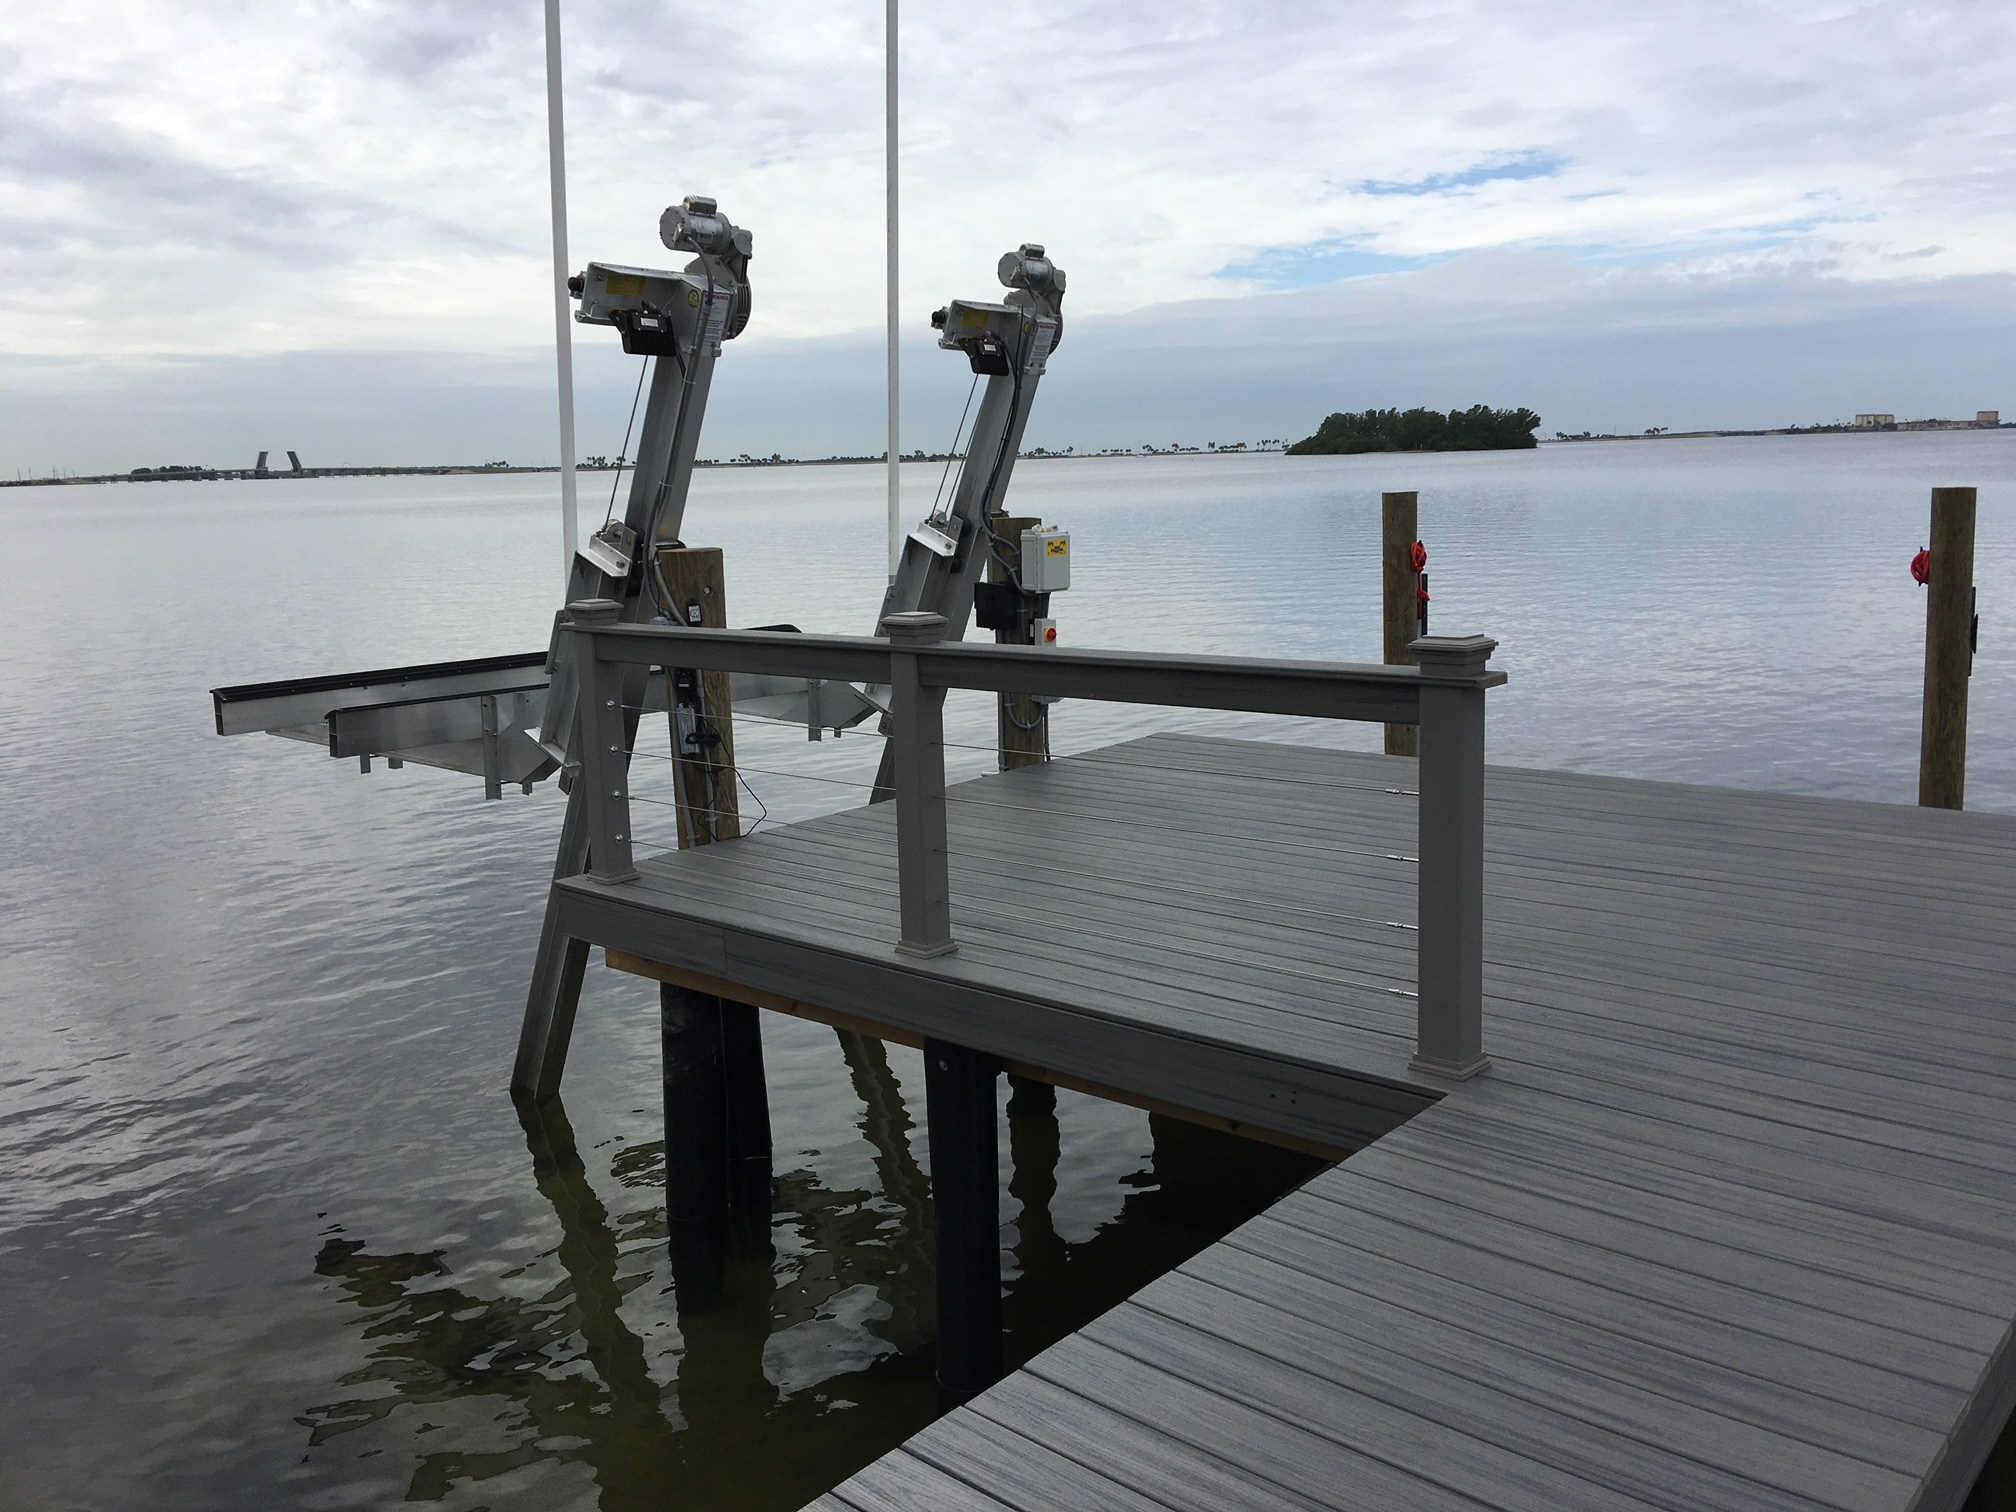 Elevator aluminum boat lift attached to stationary dock on the water